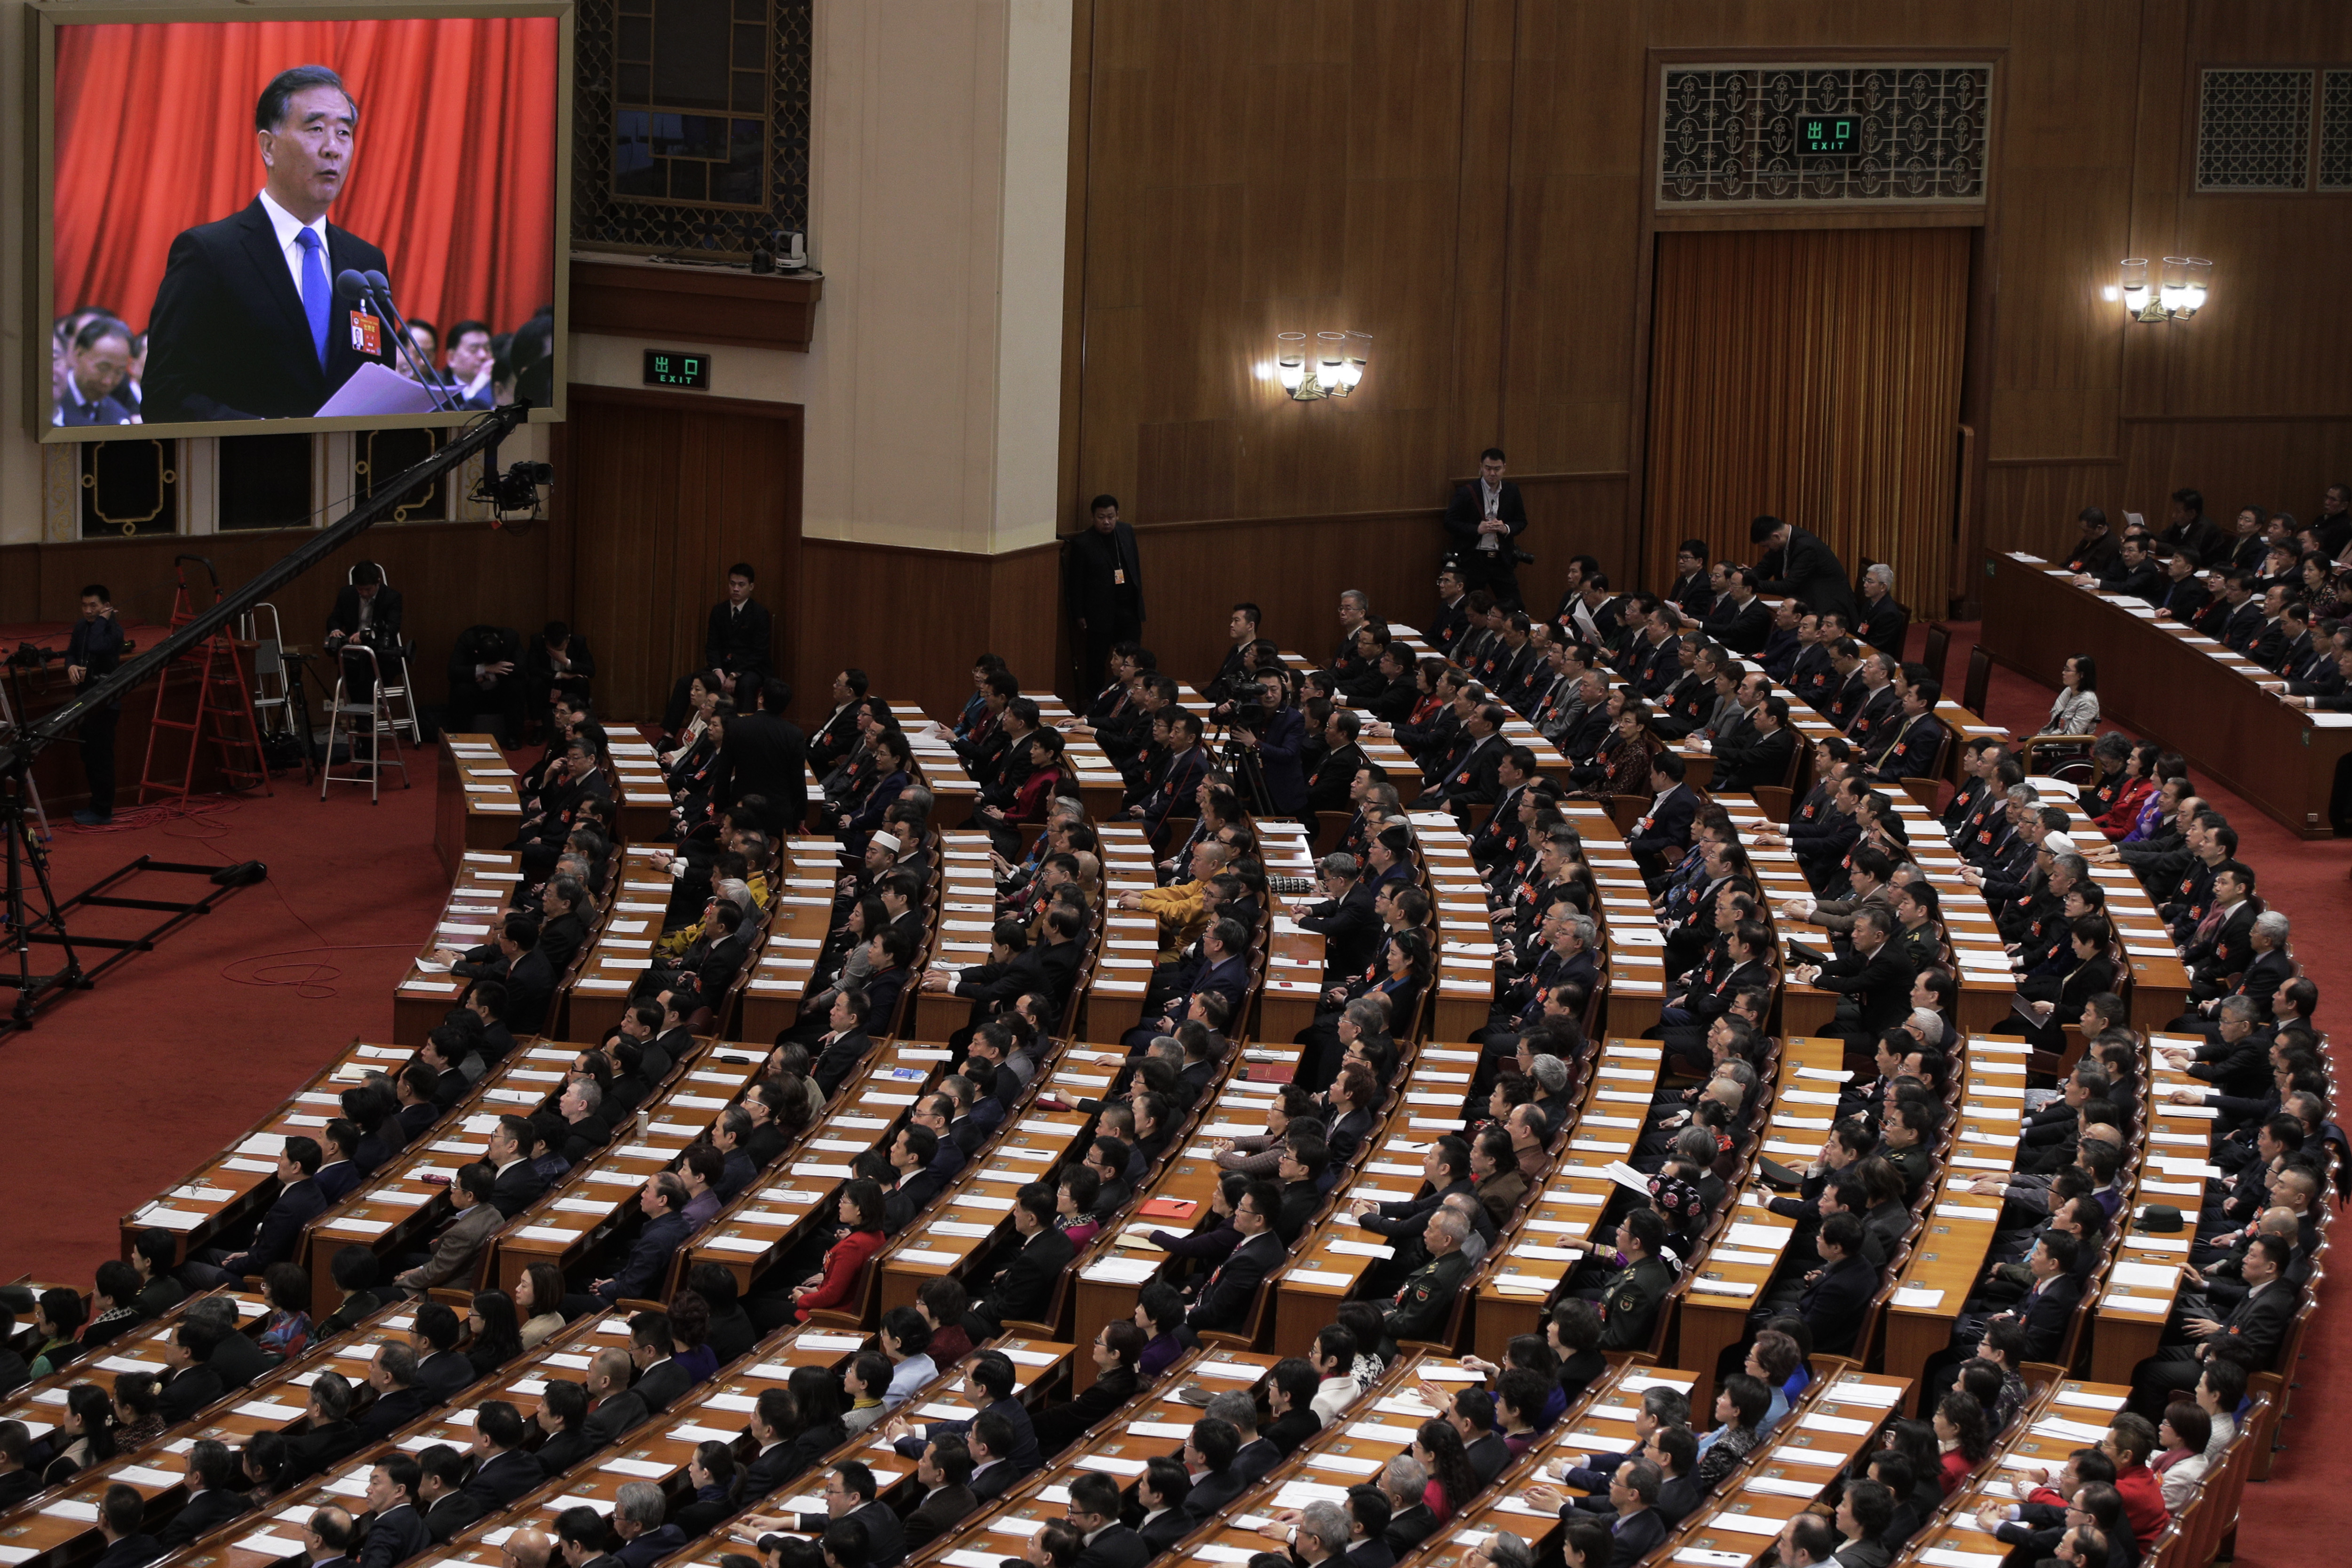 Chinese People's Political Consultative Conference (CPPCC) chairman and Politburo Standing Committee member Wang Yang appears on a screen delivers a closing speech for the Chinese People's Political Consultative Conference (CPPCC) at the Great Hall of the People in Beijing, Wednesday, March 13, 2019. (AP Photo/Andy Wong)